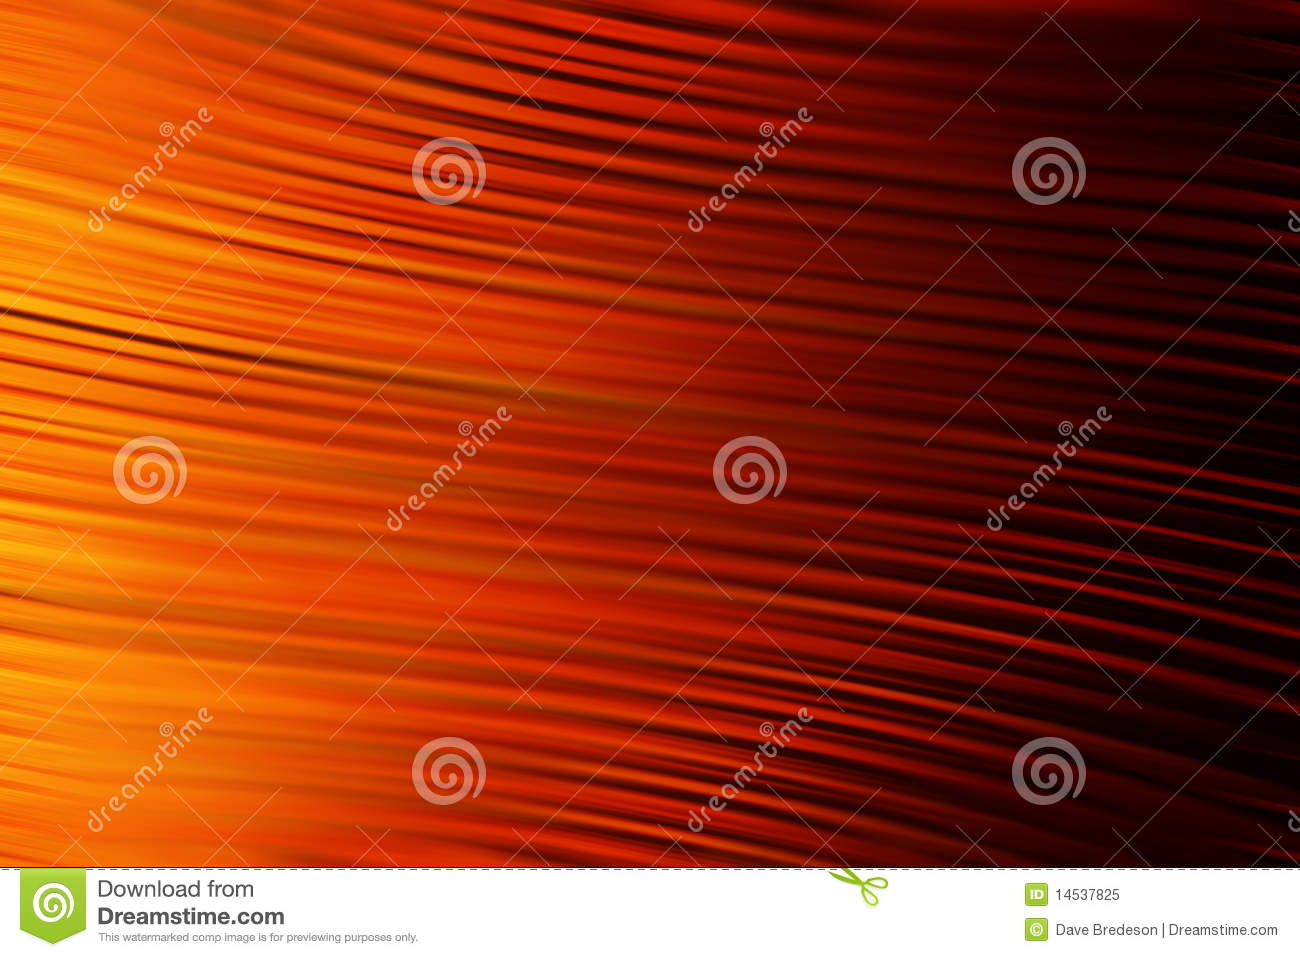 Red Orange Abstract Background